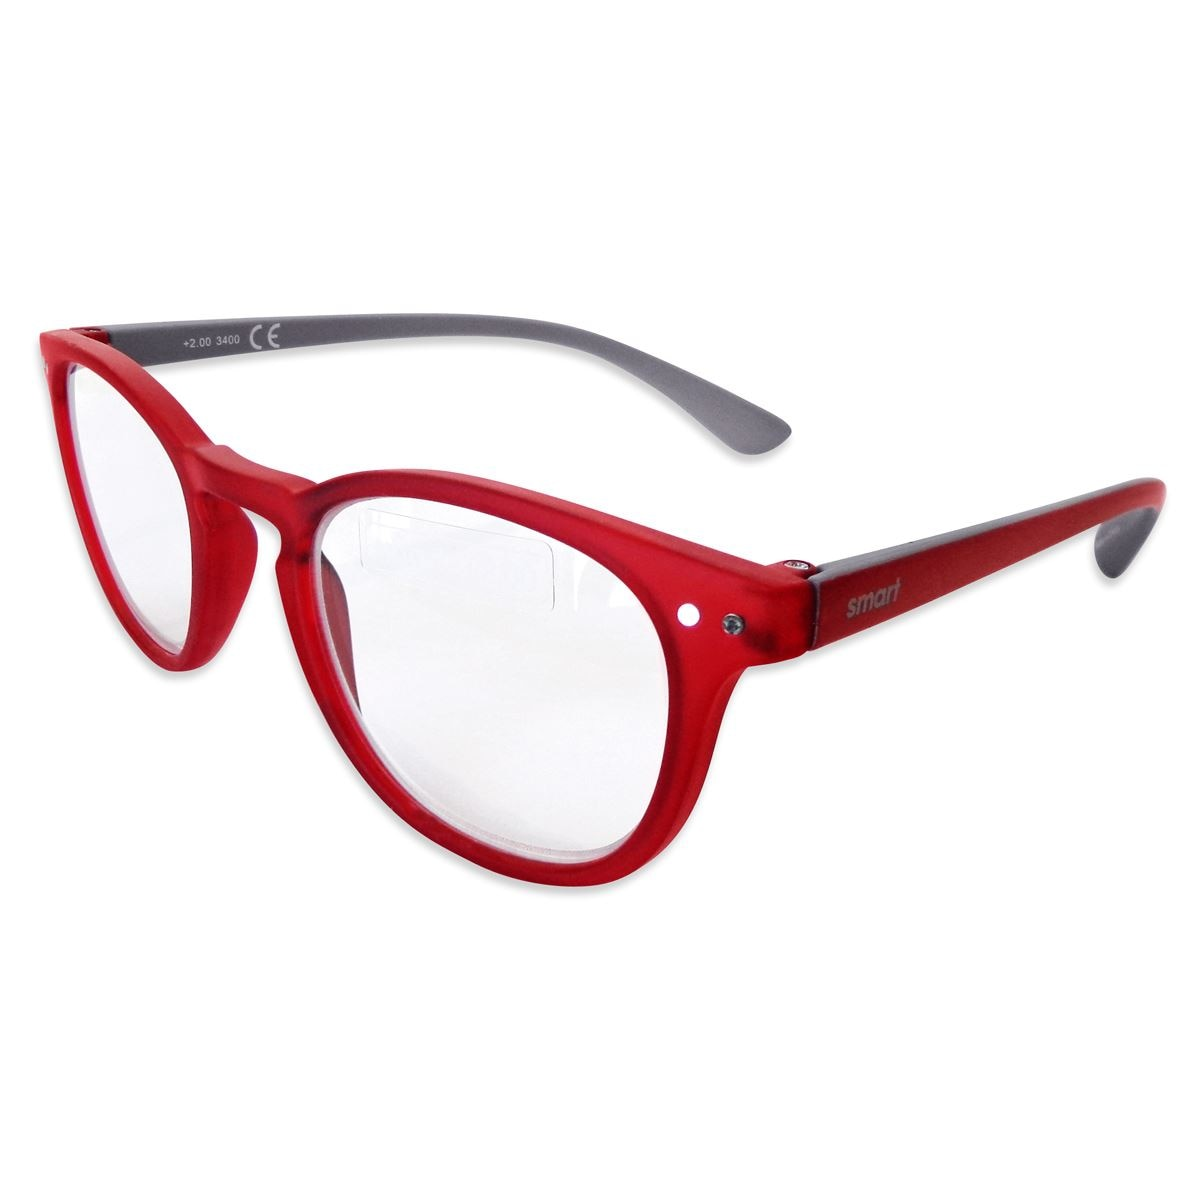 Lente pregraduado.smart reader round matt red +1.50  - Sanborns